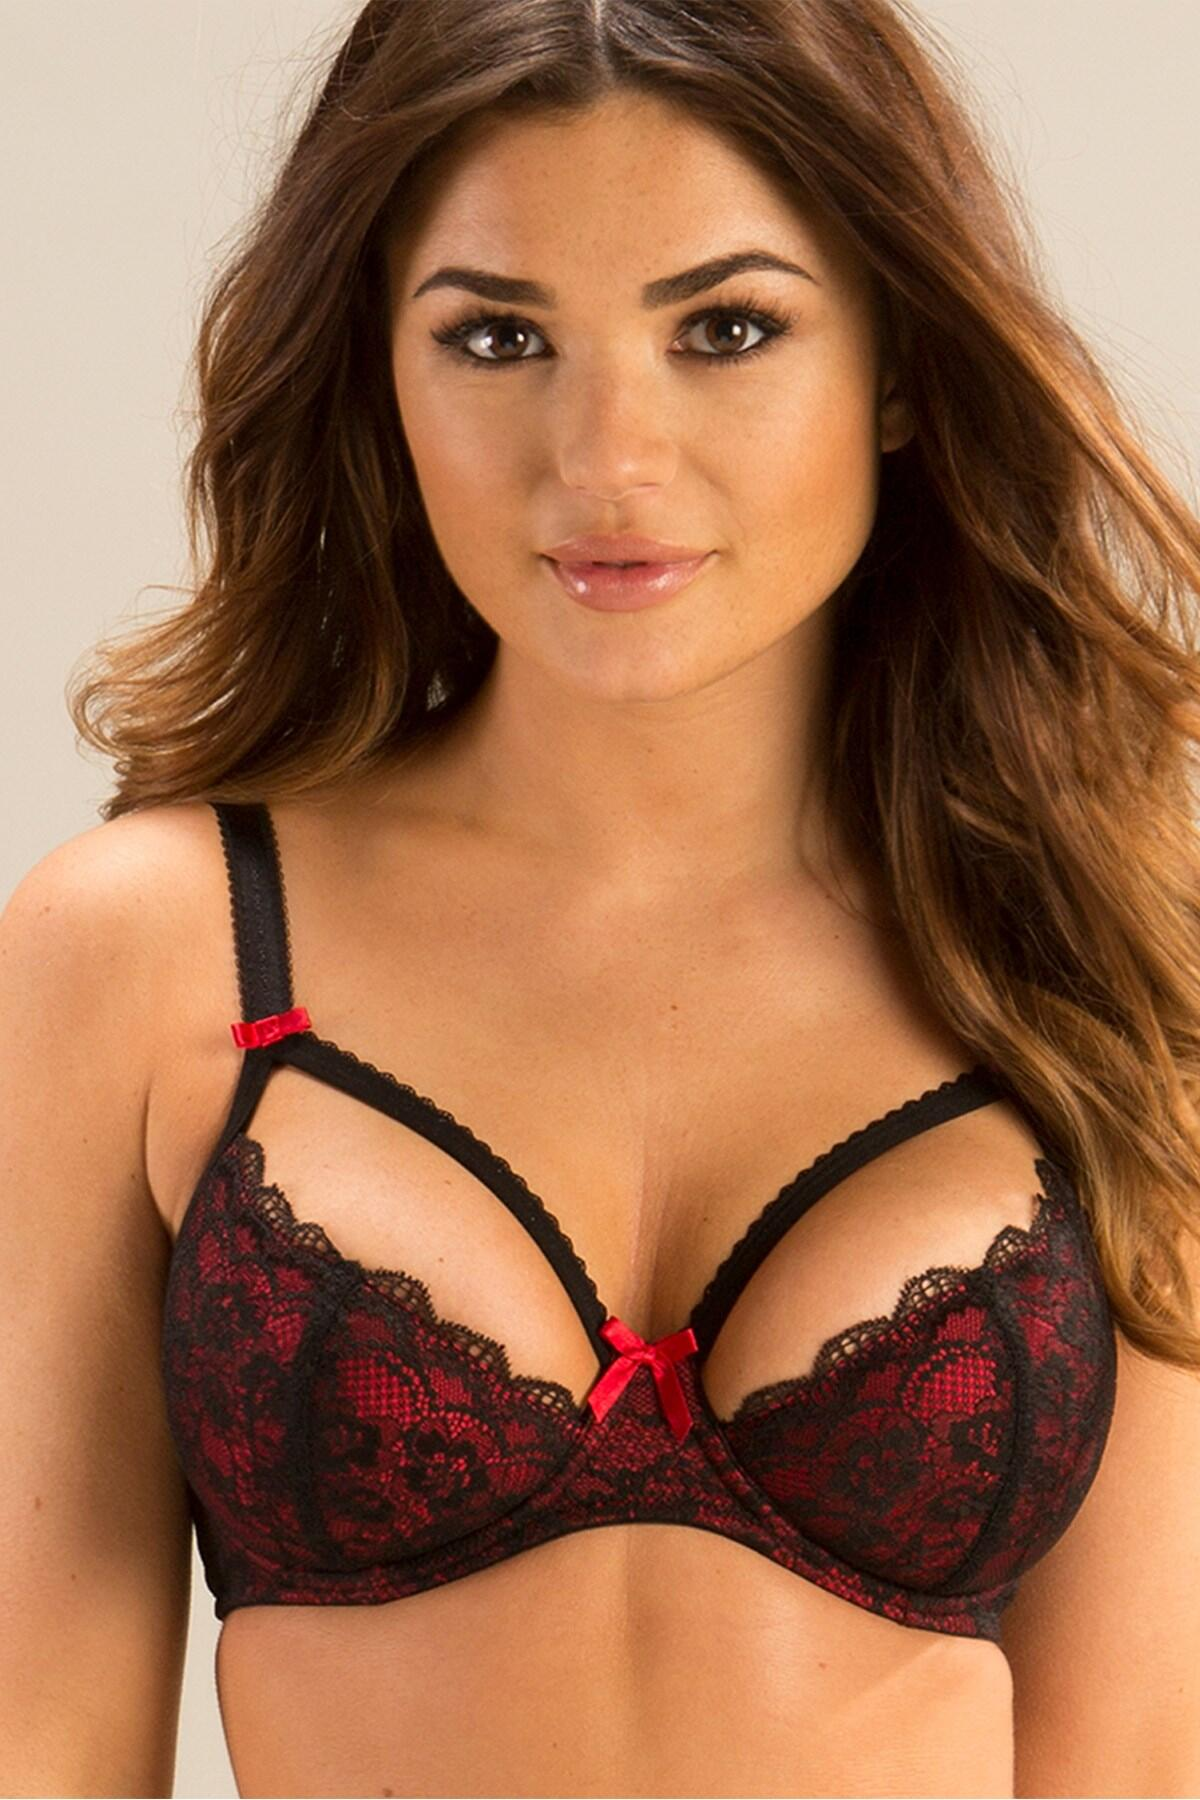 Instinct Lightly Padded Bra - Black/Red